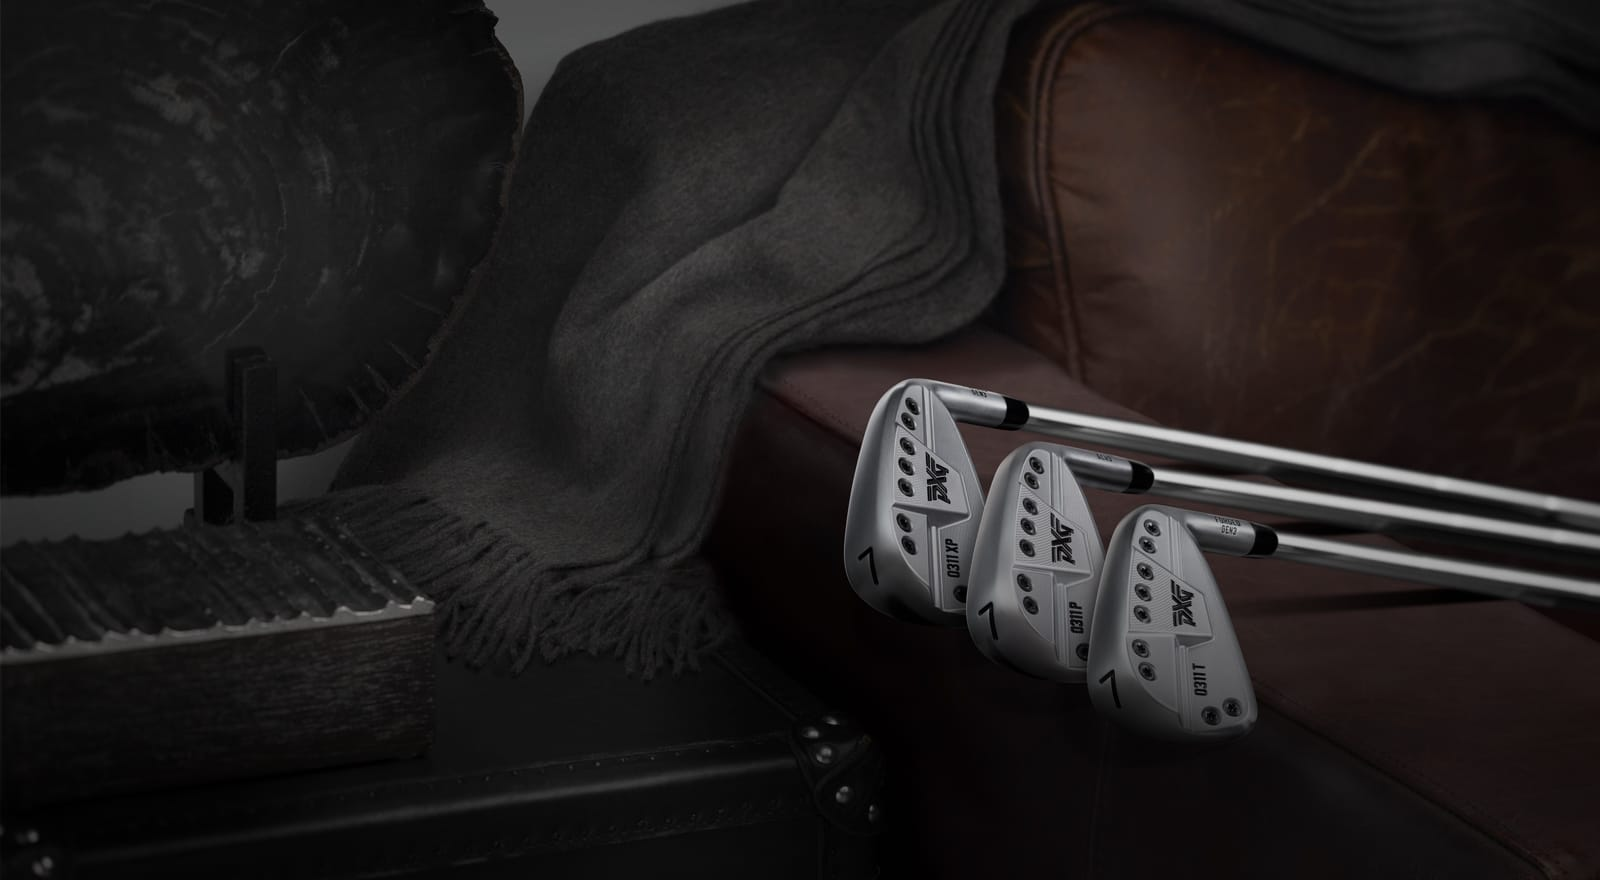 PXG's Outstanding Golf Club Technology